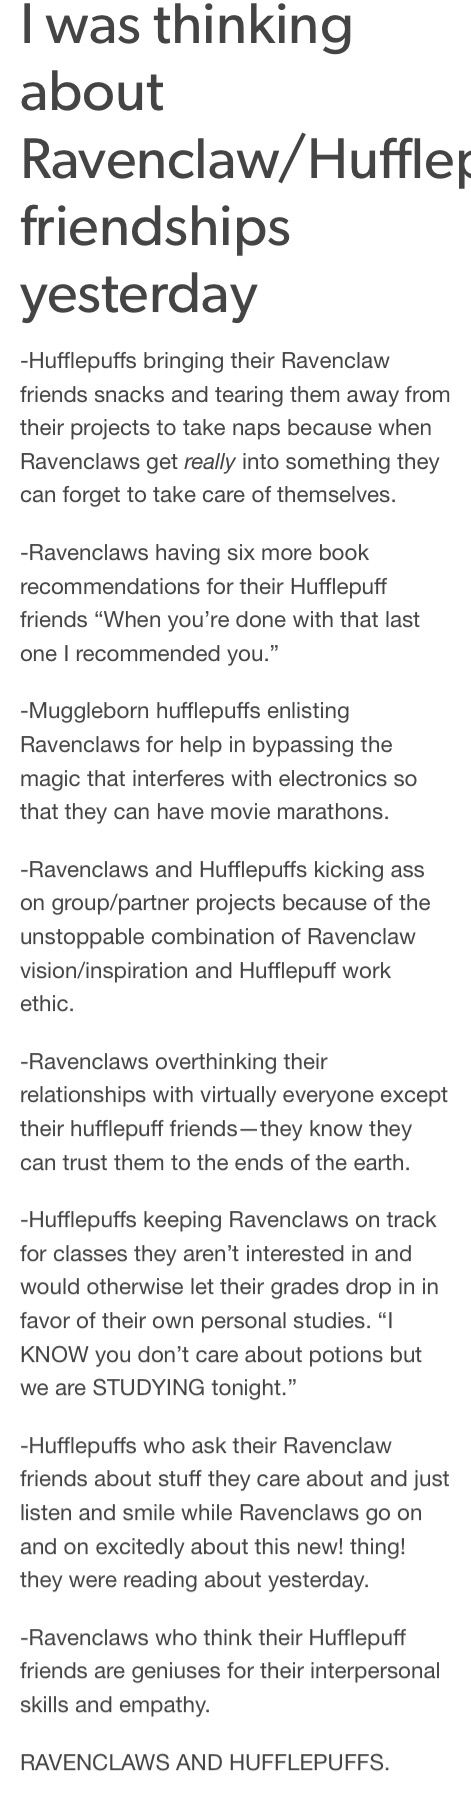 Hufflepuff and Ravenclaw friendship.